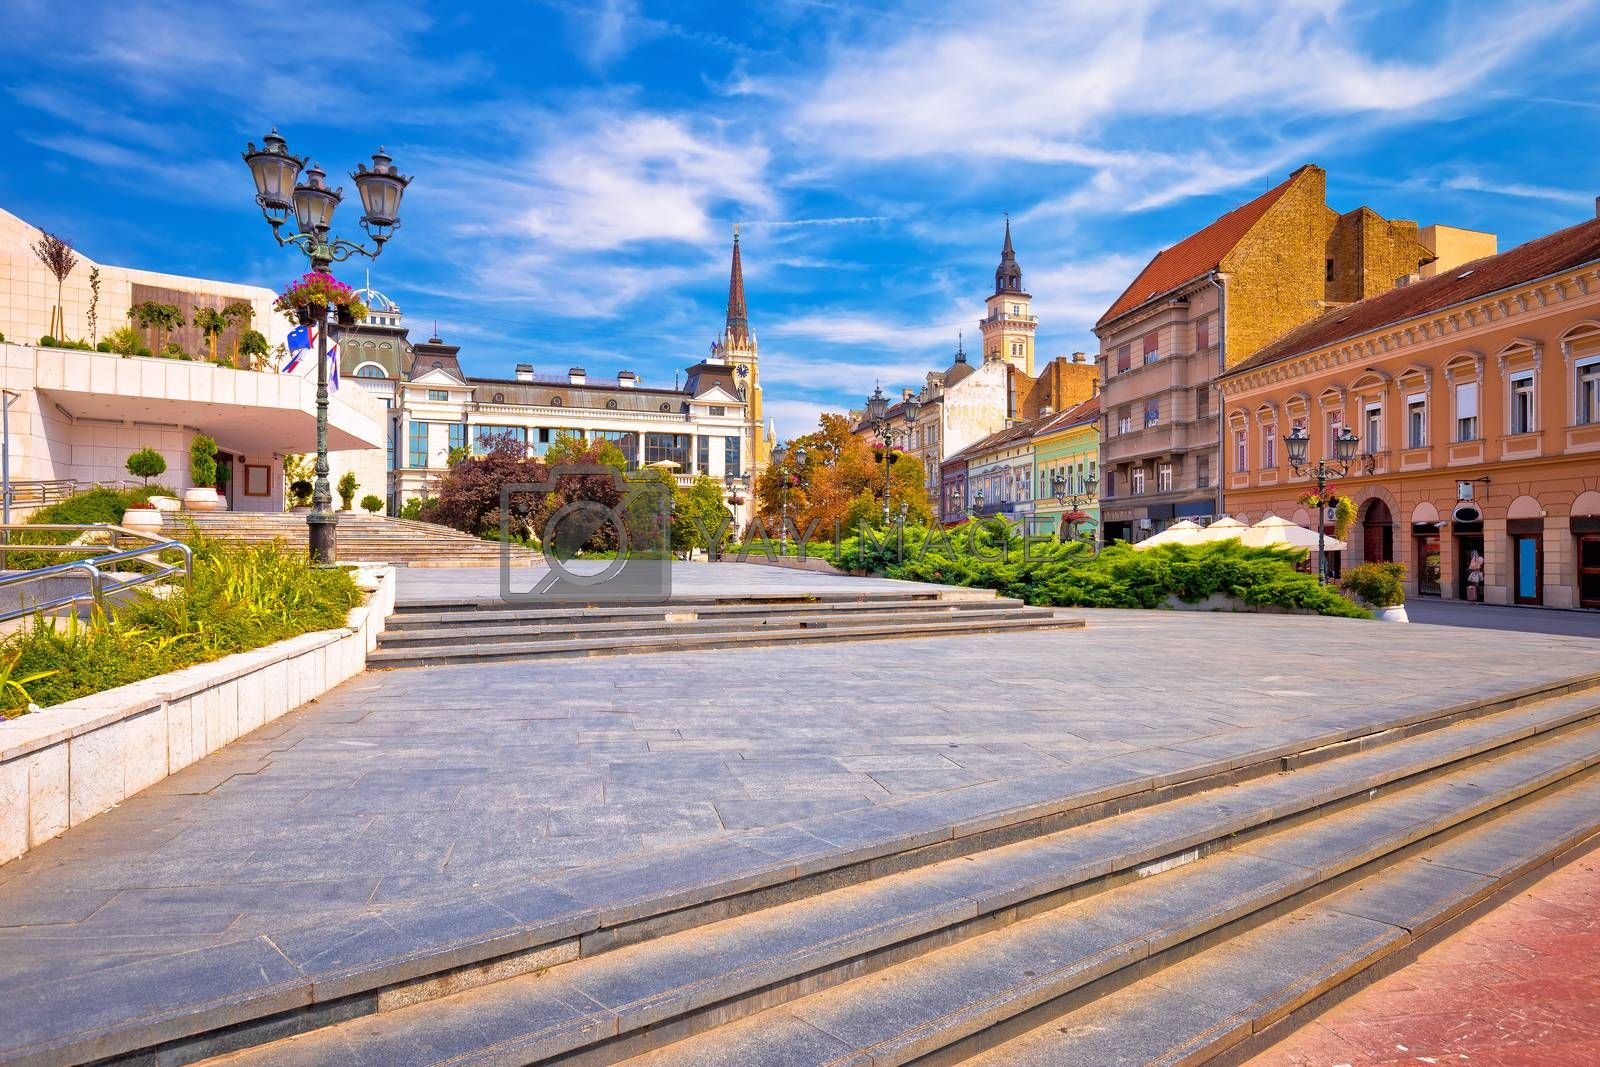 Novi Sad square and architecture street view, Vojvodina region of Serbia